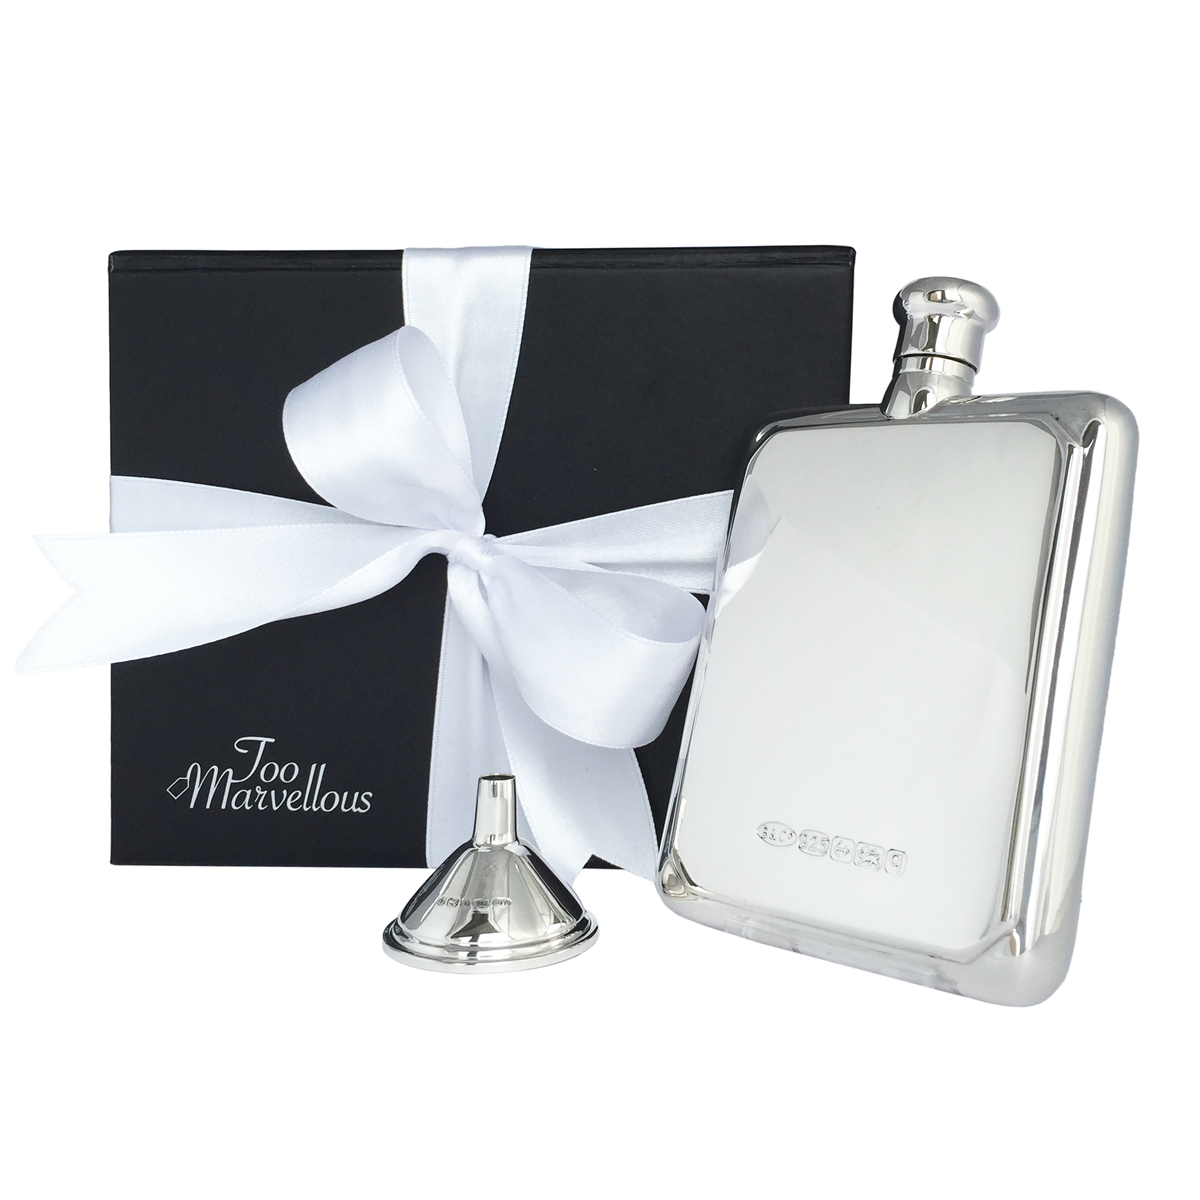 Gift Sets over £150